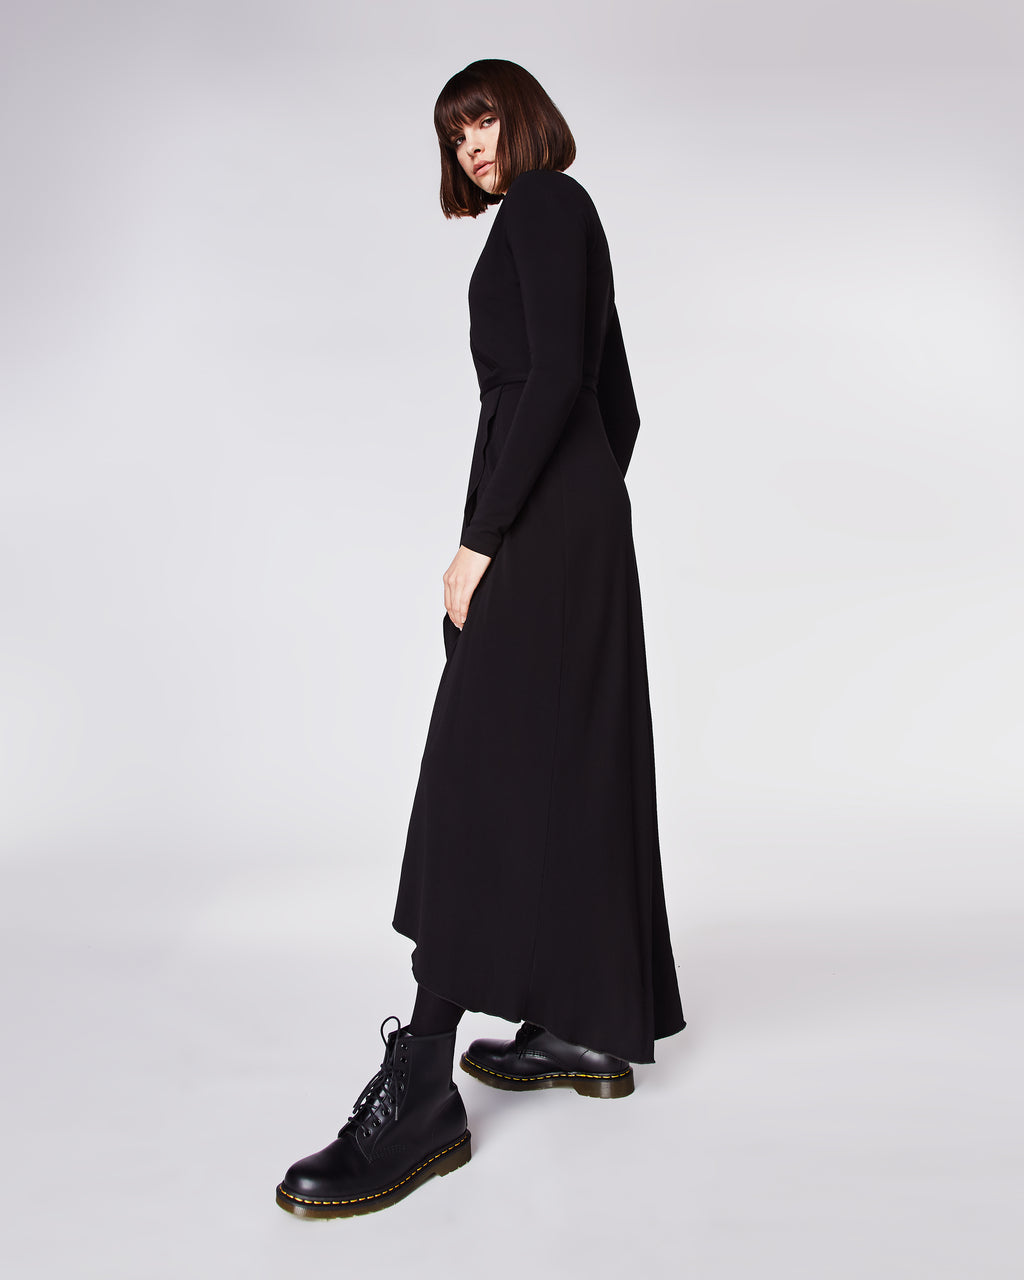 BA10143 - ST. MATTE JERSEY WRAP DRESS - dresses - long - Chic and comfortable, this matte stretch jersey maxi dress features long sleeves, a wrap silhouette and subtle high-low hemline. Unlined.